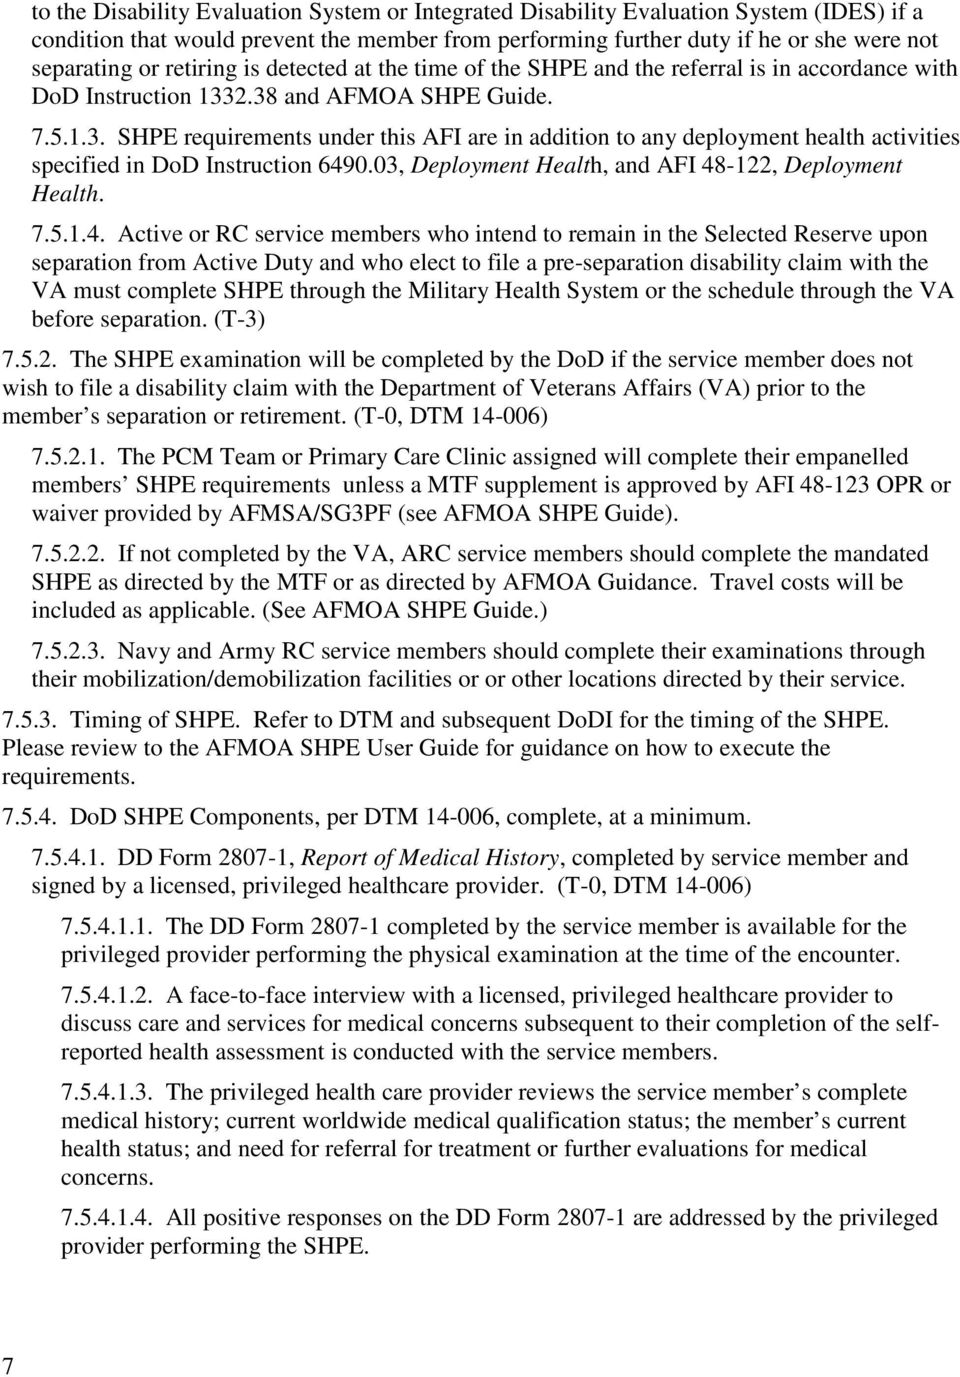 2.38 and AFMOA SHPE Guide. 7.5.1.3. SHPE requirements under this AFI are in addition to any deployment health activities specified in DoD Instruction 6490.